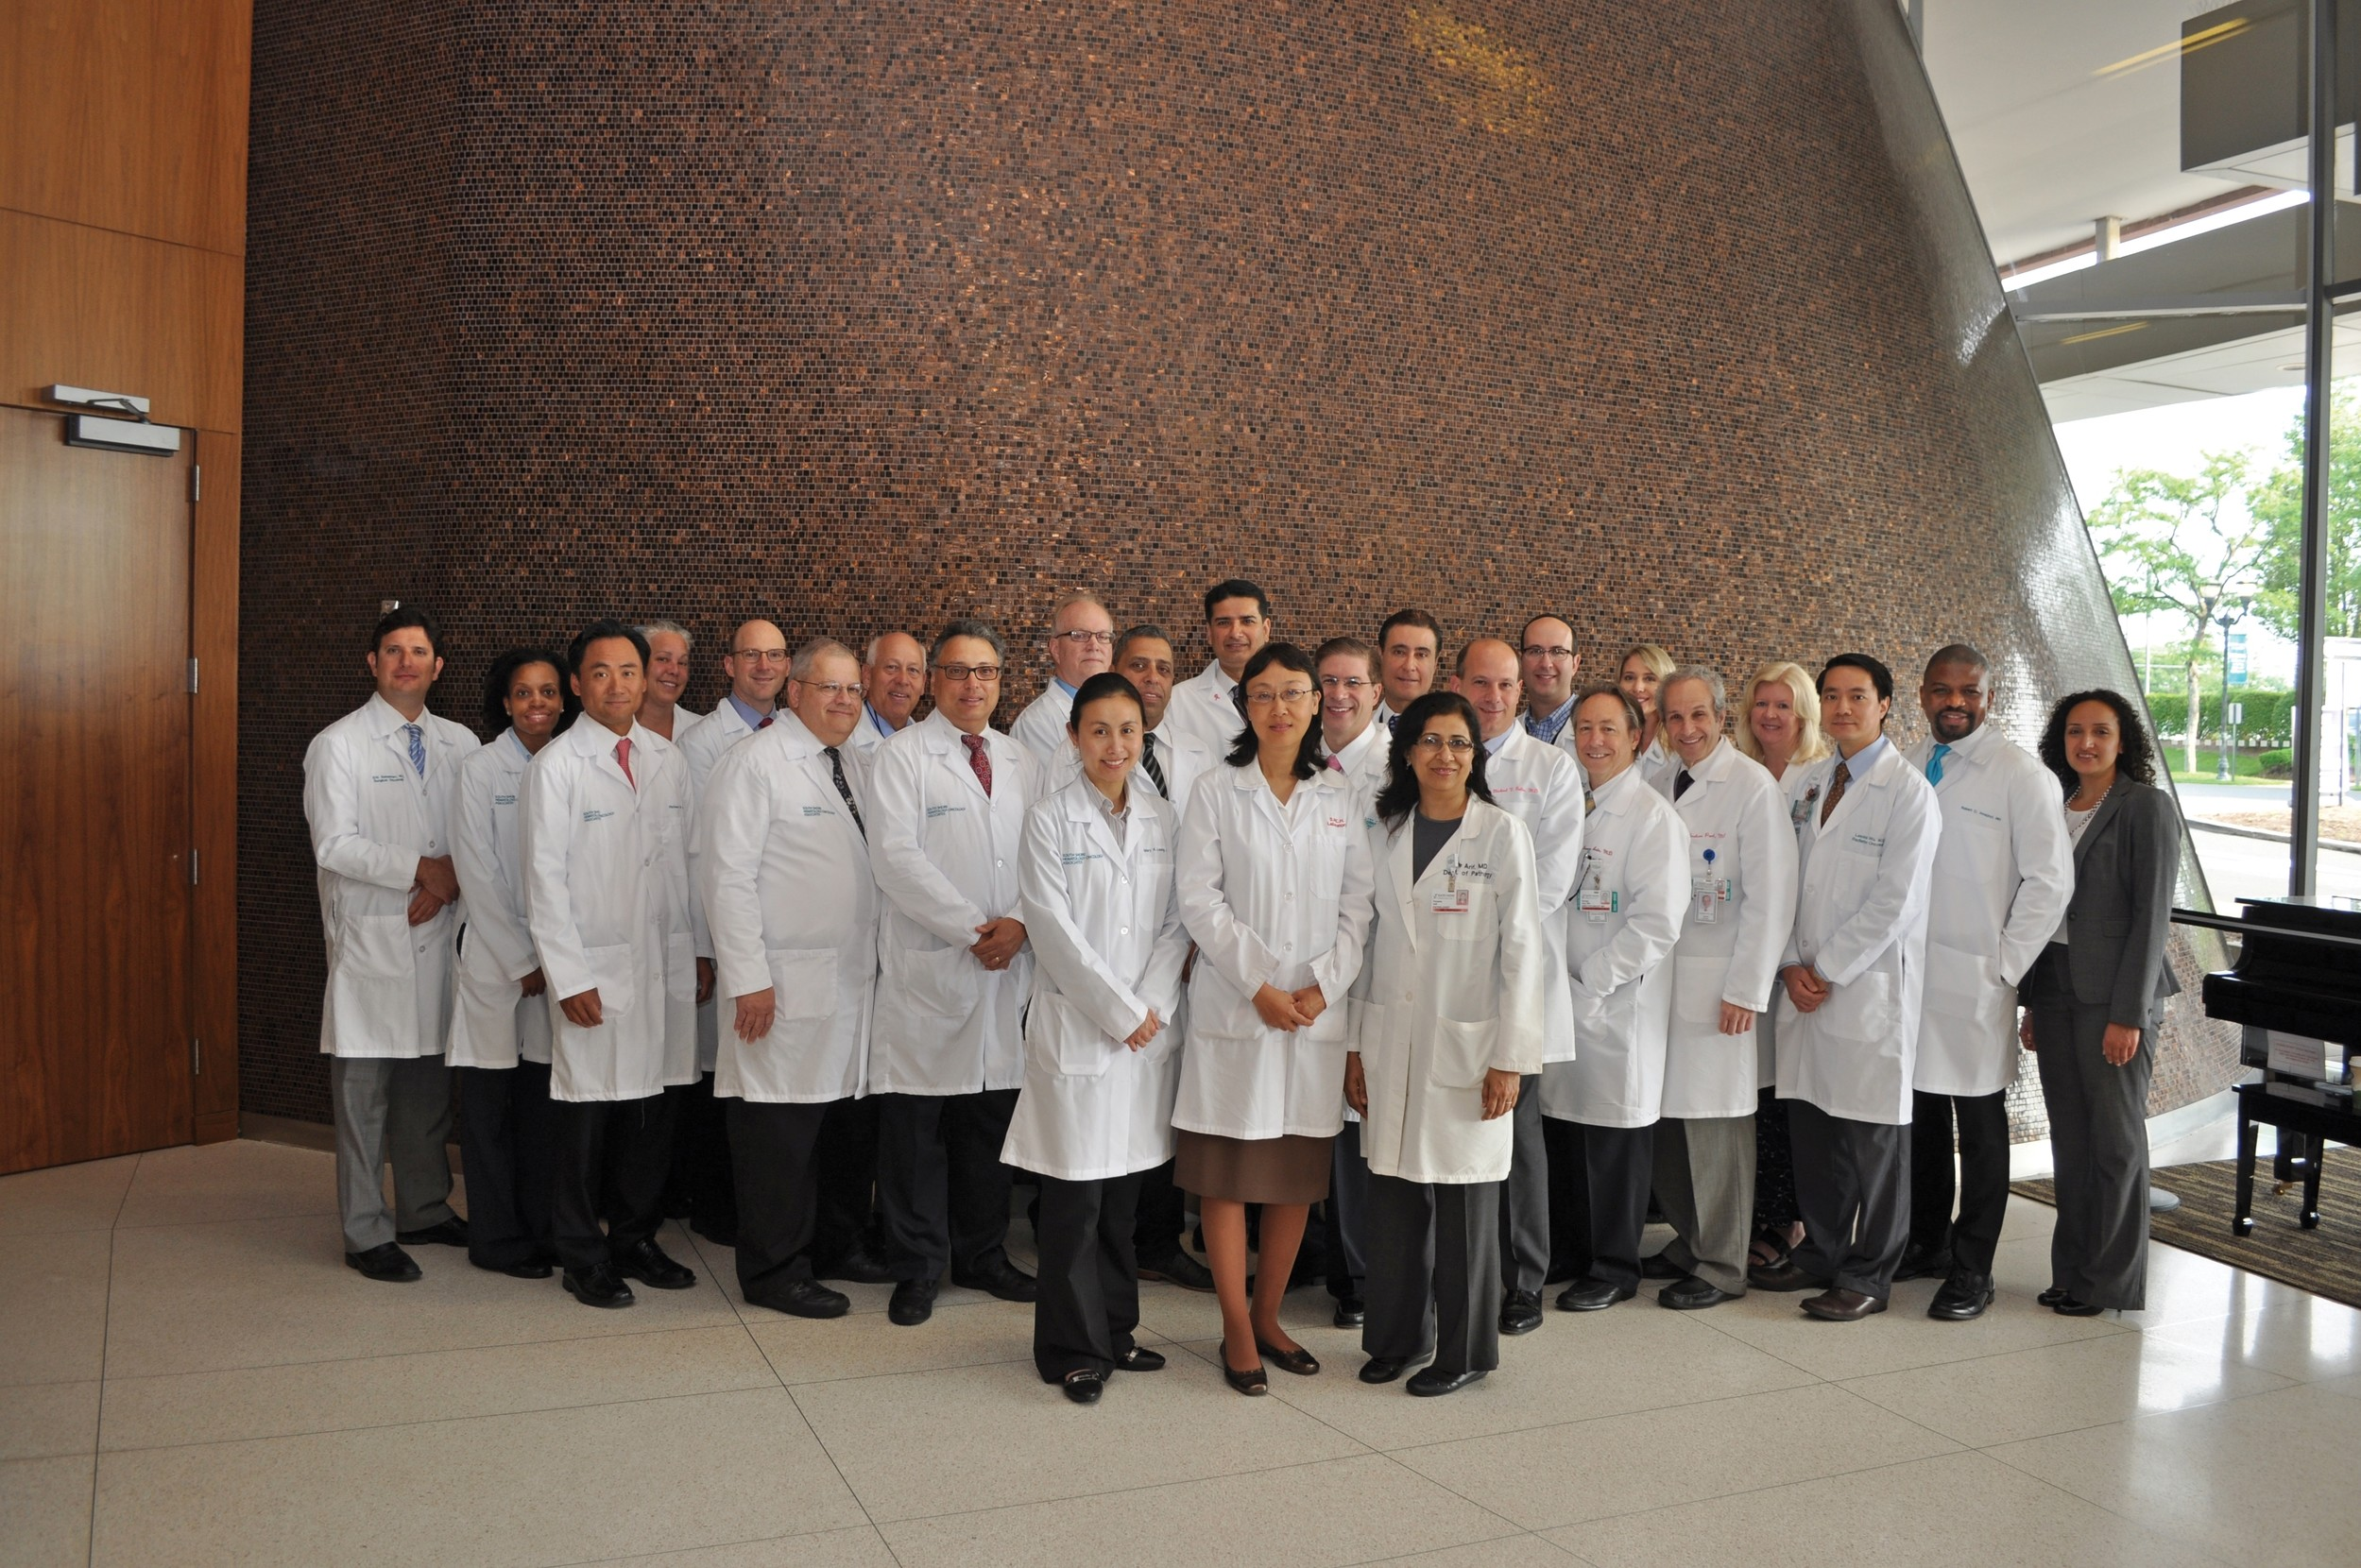 South Nassau Communities Hospital's comprehensive cancer program features a team of medical, radiation, and surgical oncologists.